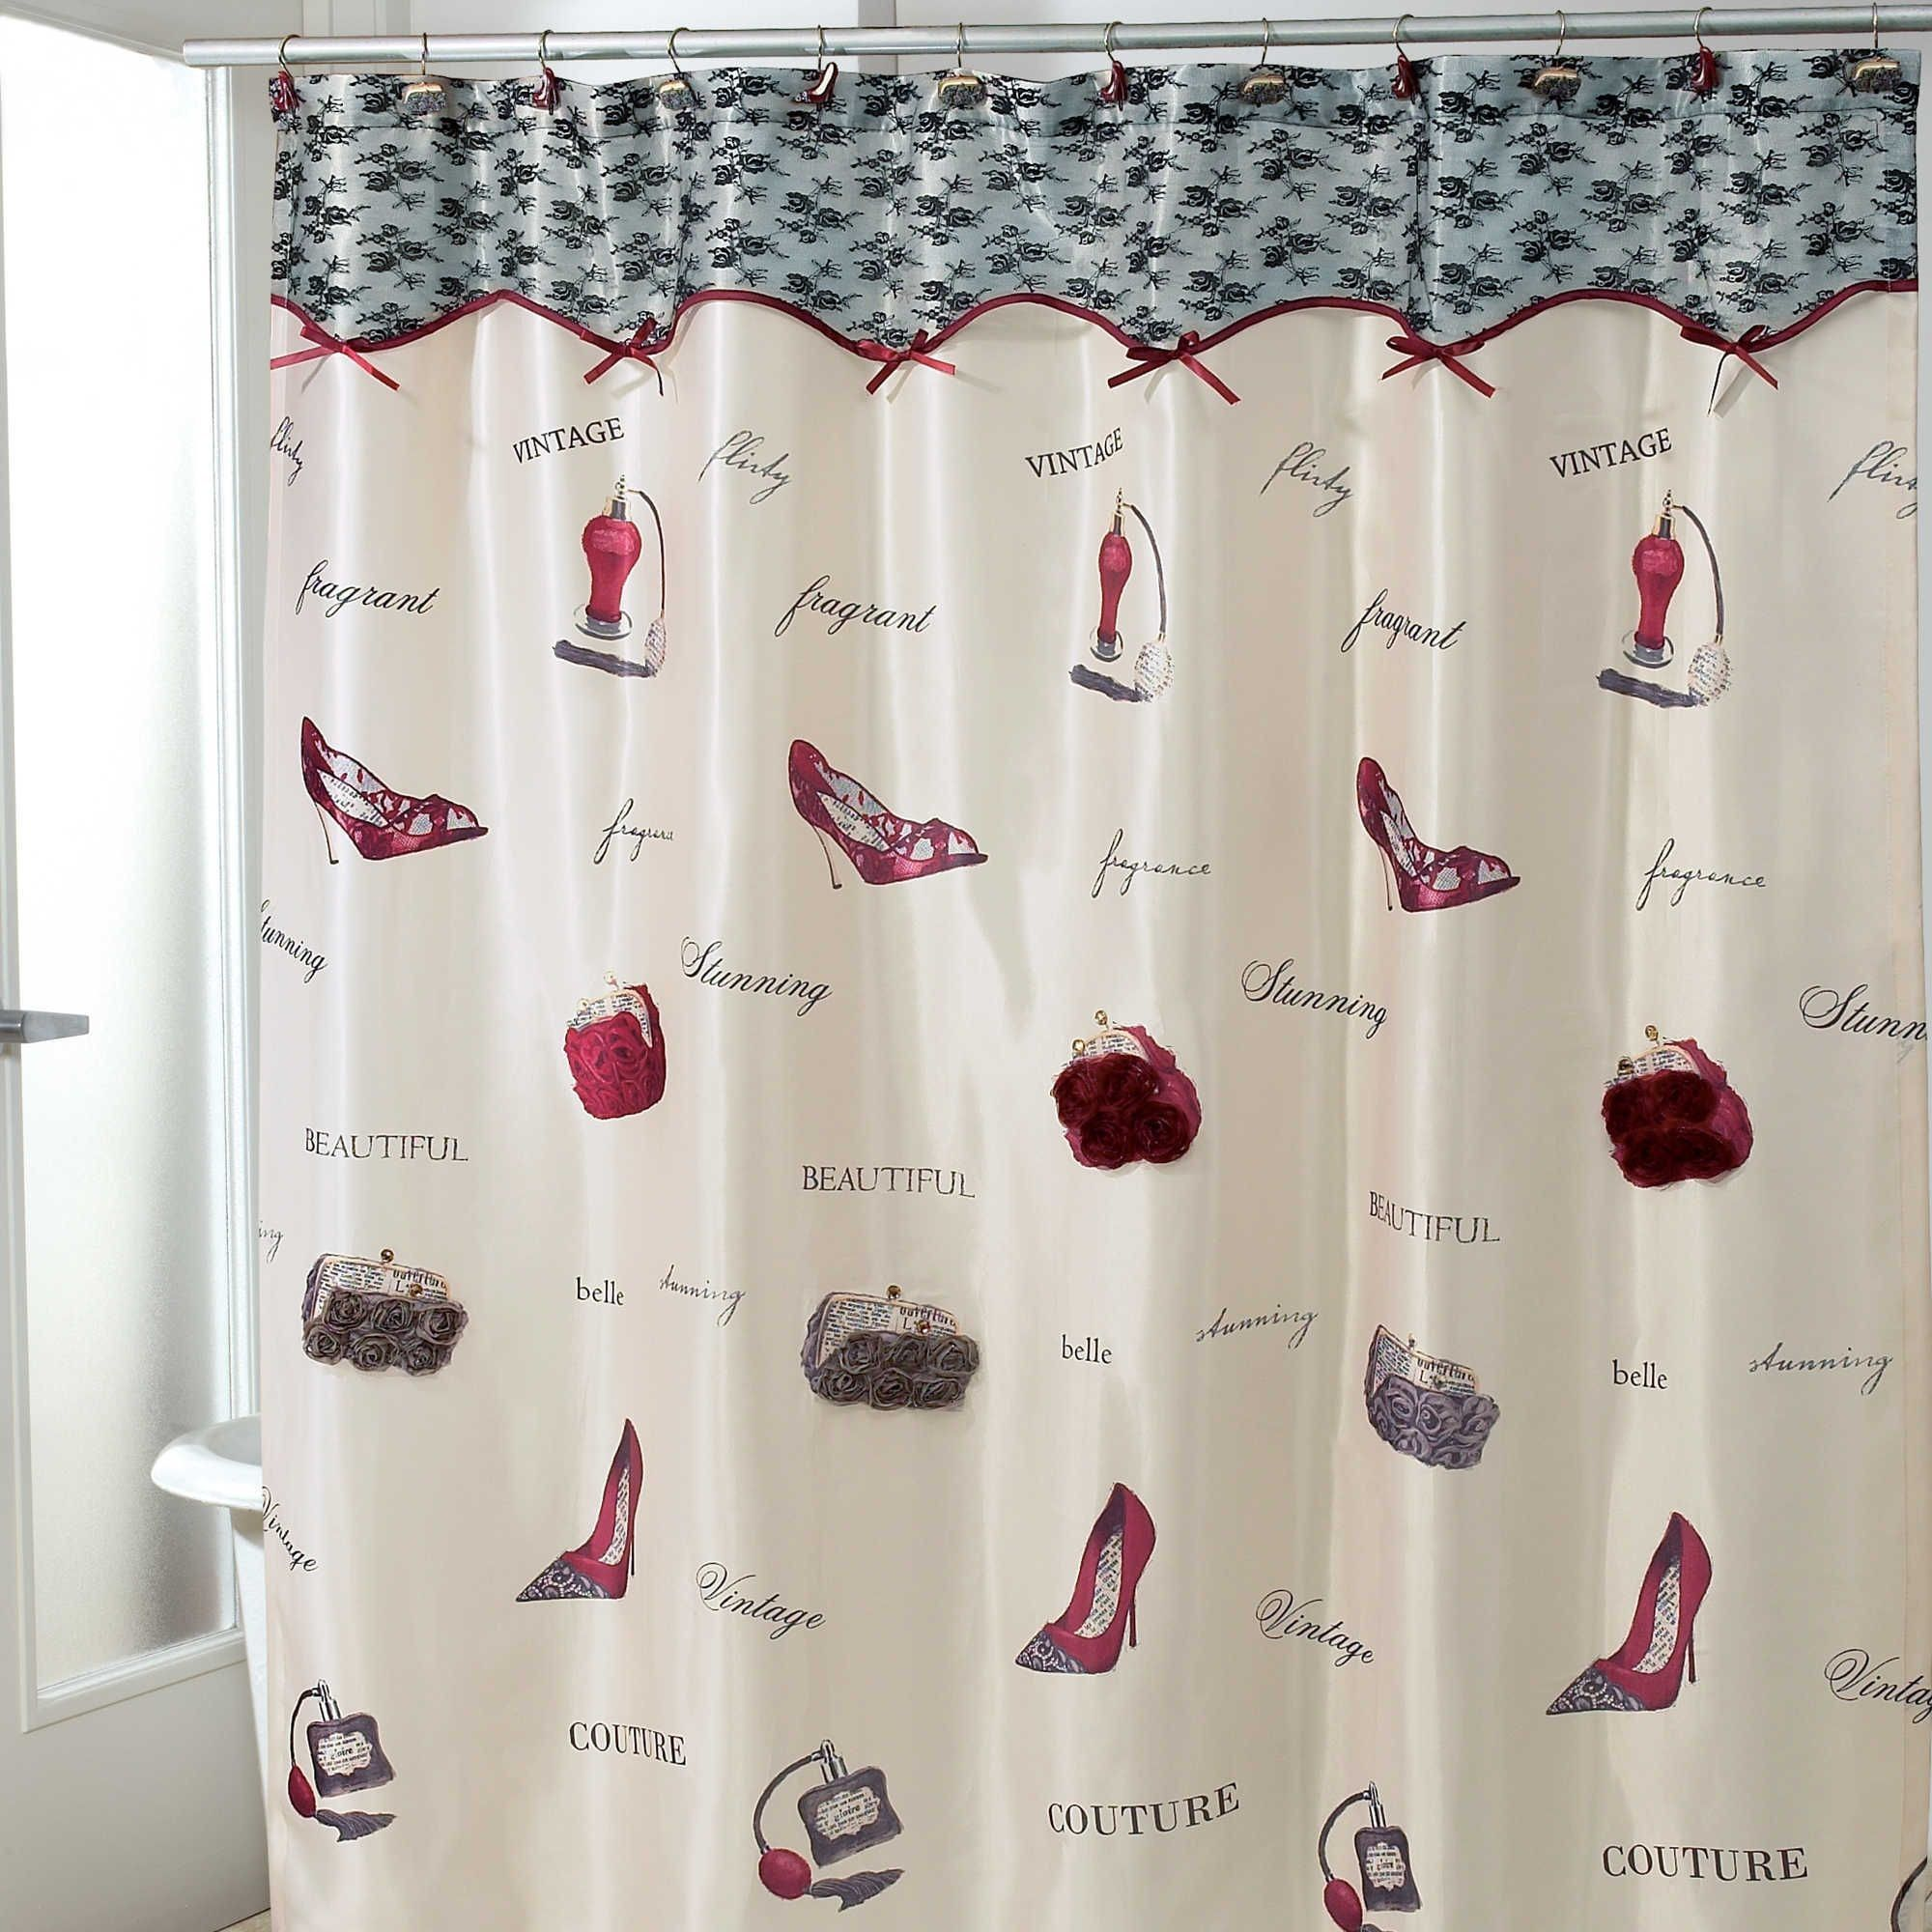 Elegant Dressed To Thrill Shower Curtain Check More At Https